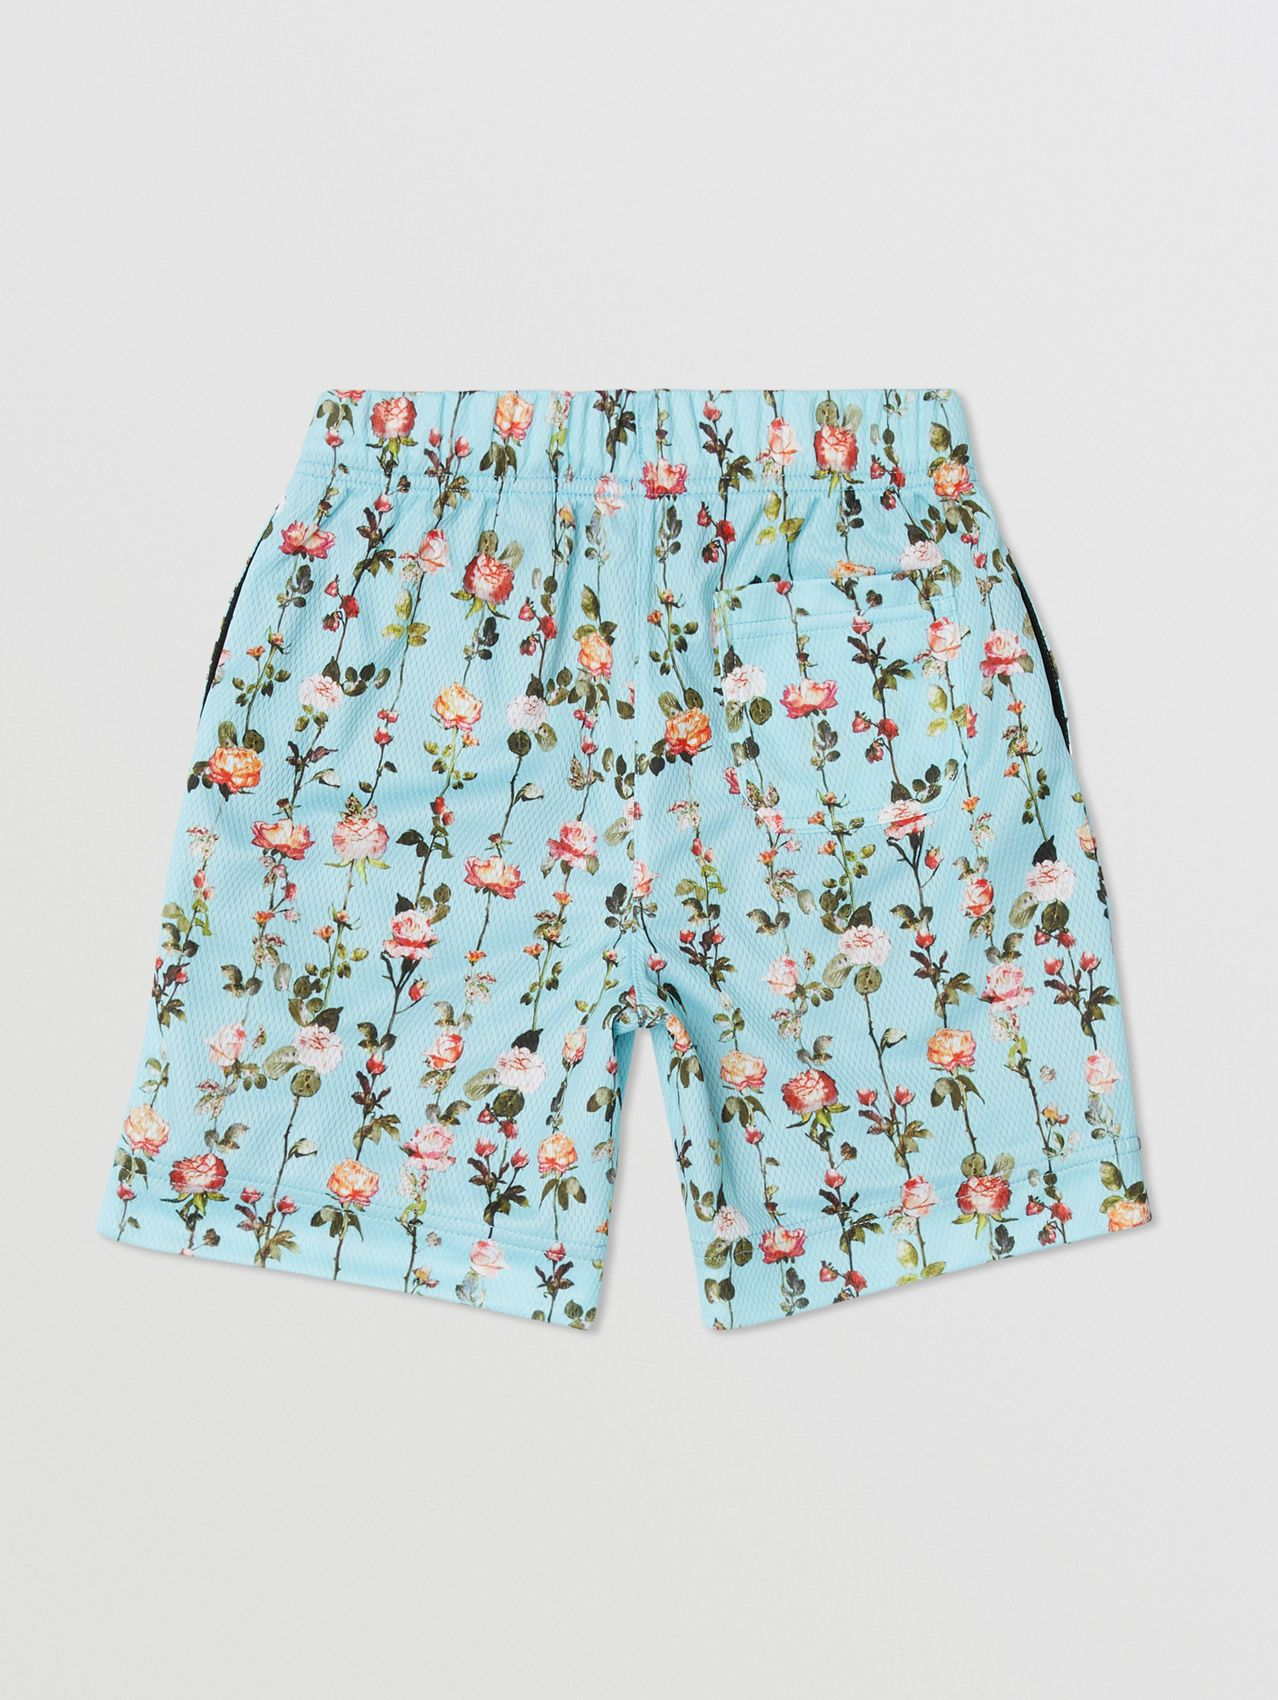 Monogram Motif Rose Print Jersey Mesh Shorts in Blue Topaz